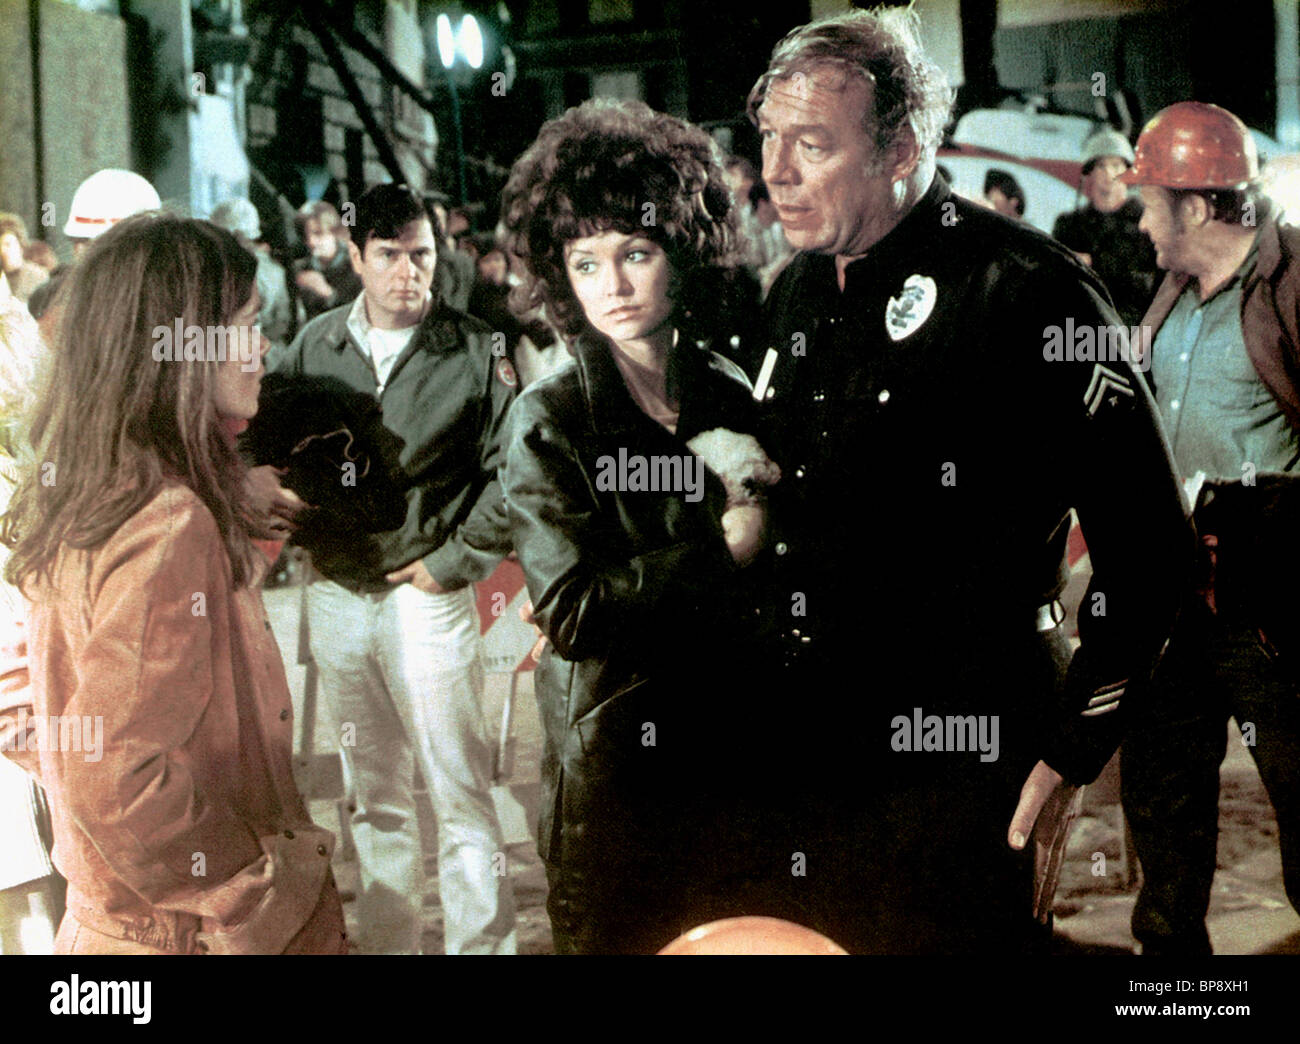 VICTORIA PRINCIPAL, GENEVIEVE BUJOLD, GEORGE KENNEDY, EARTHQUAKE, 1974 - Stock Image